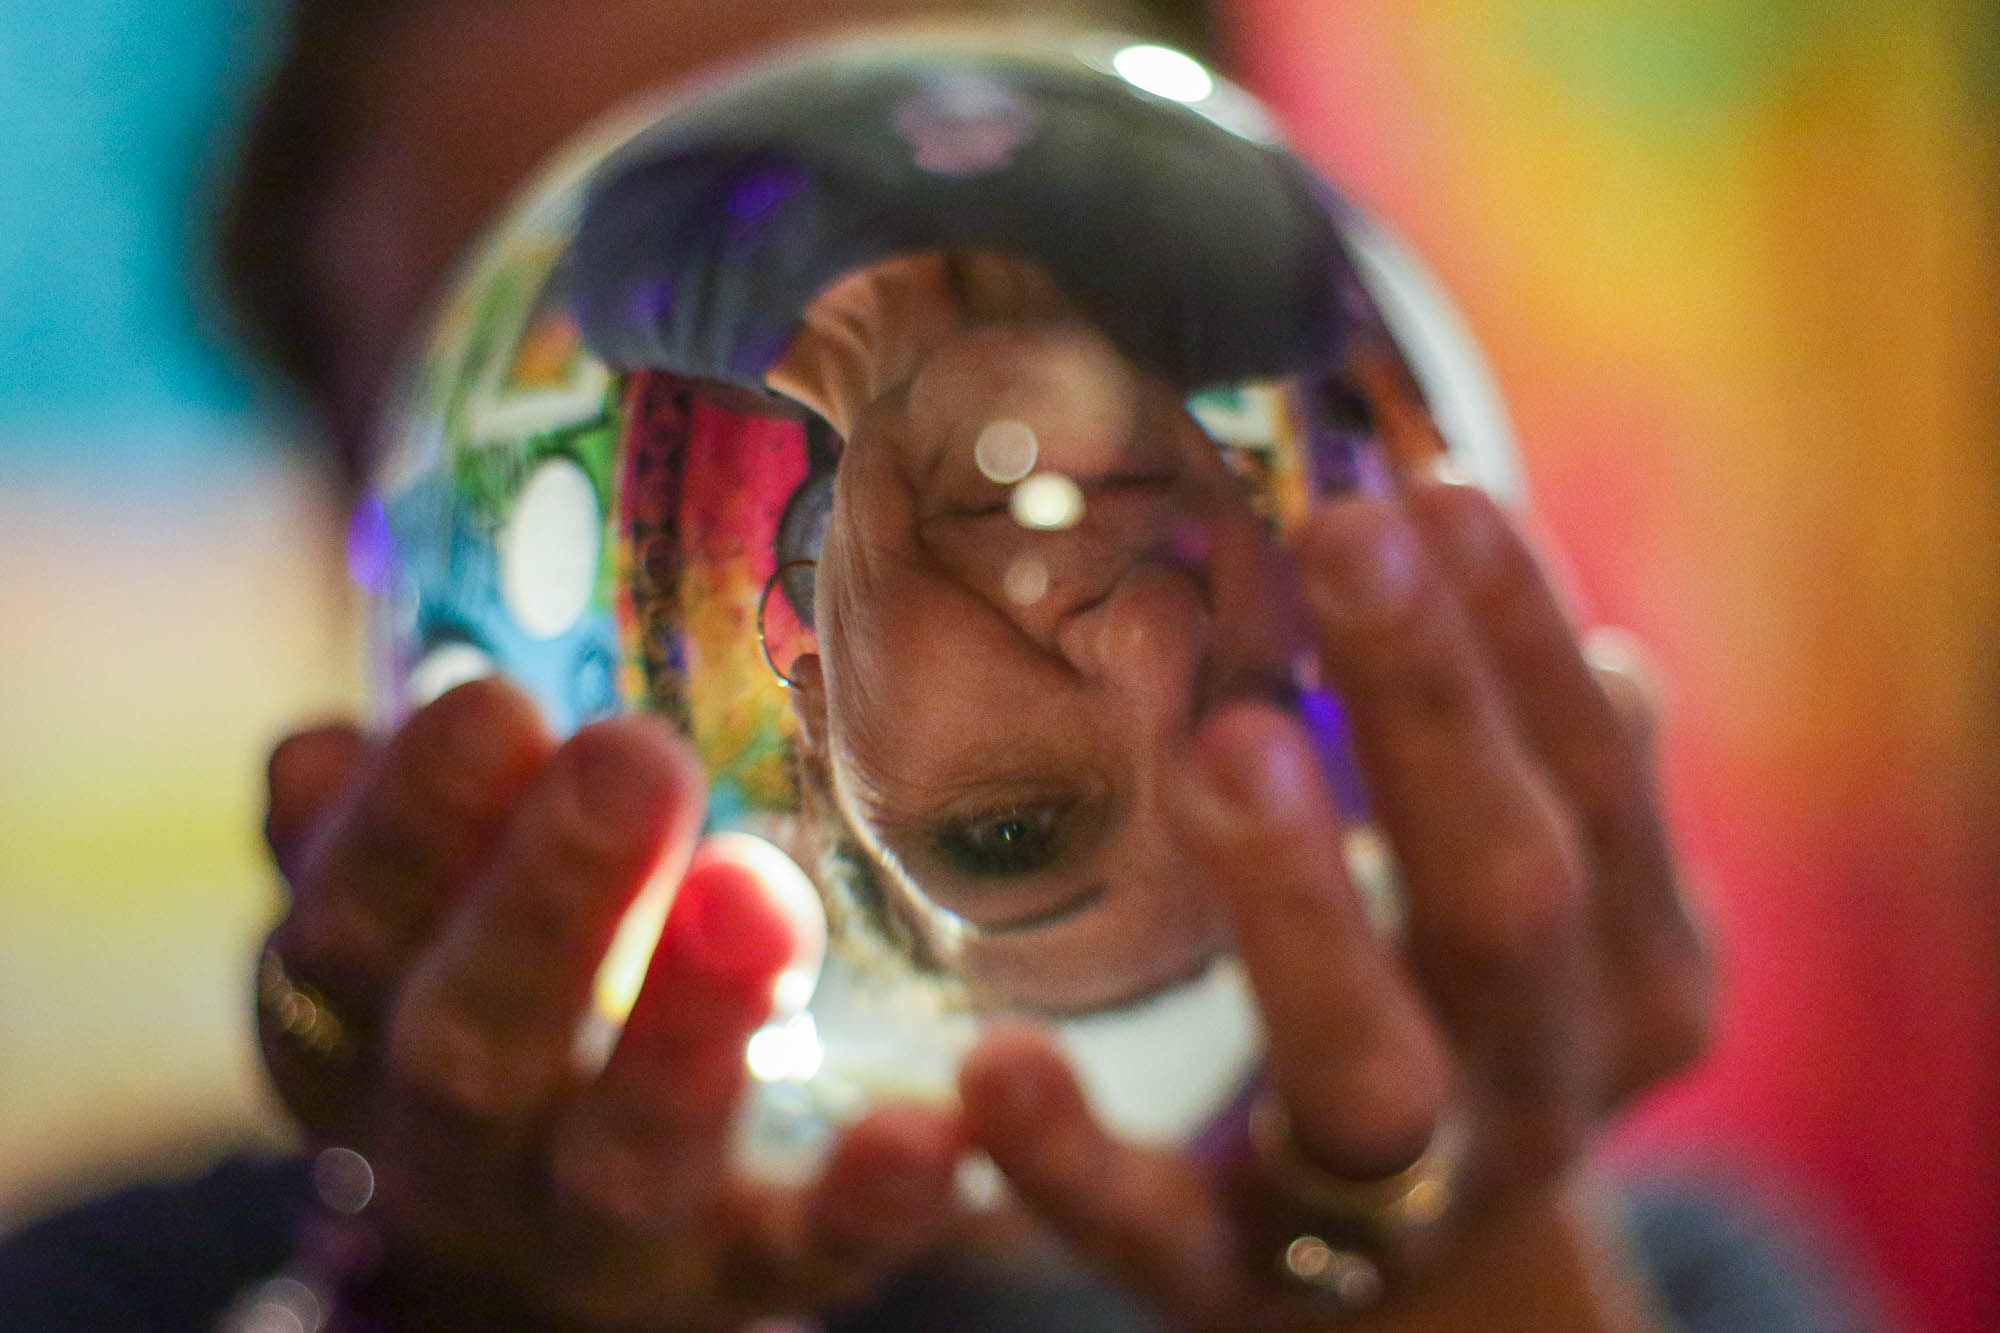 Donna Shook, 54, holds a crystal ball and poses for a portrait at her newly opened spiritual store, Something Magical, in Victoria, Texas, on June 19, 2019.